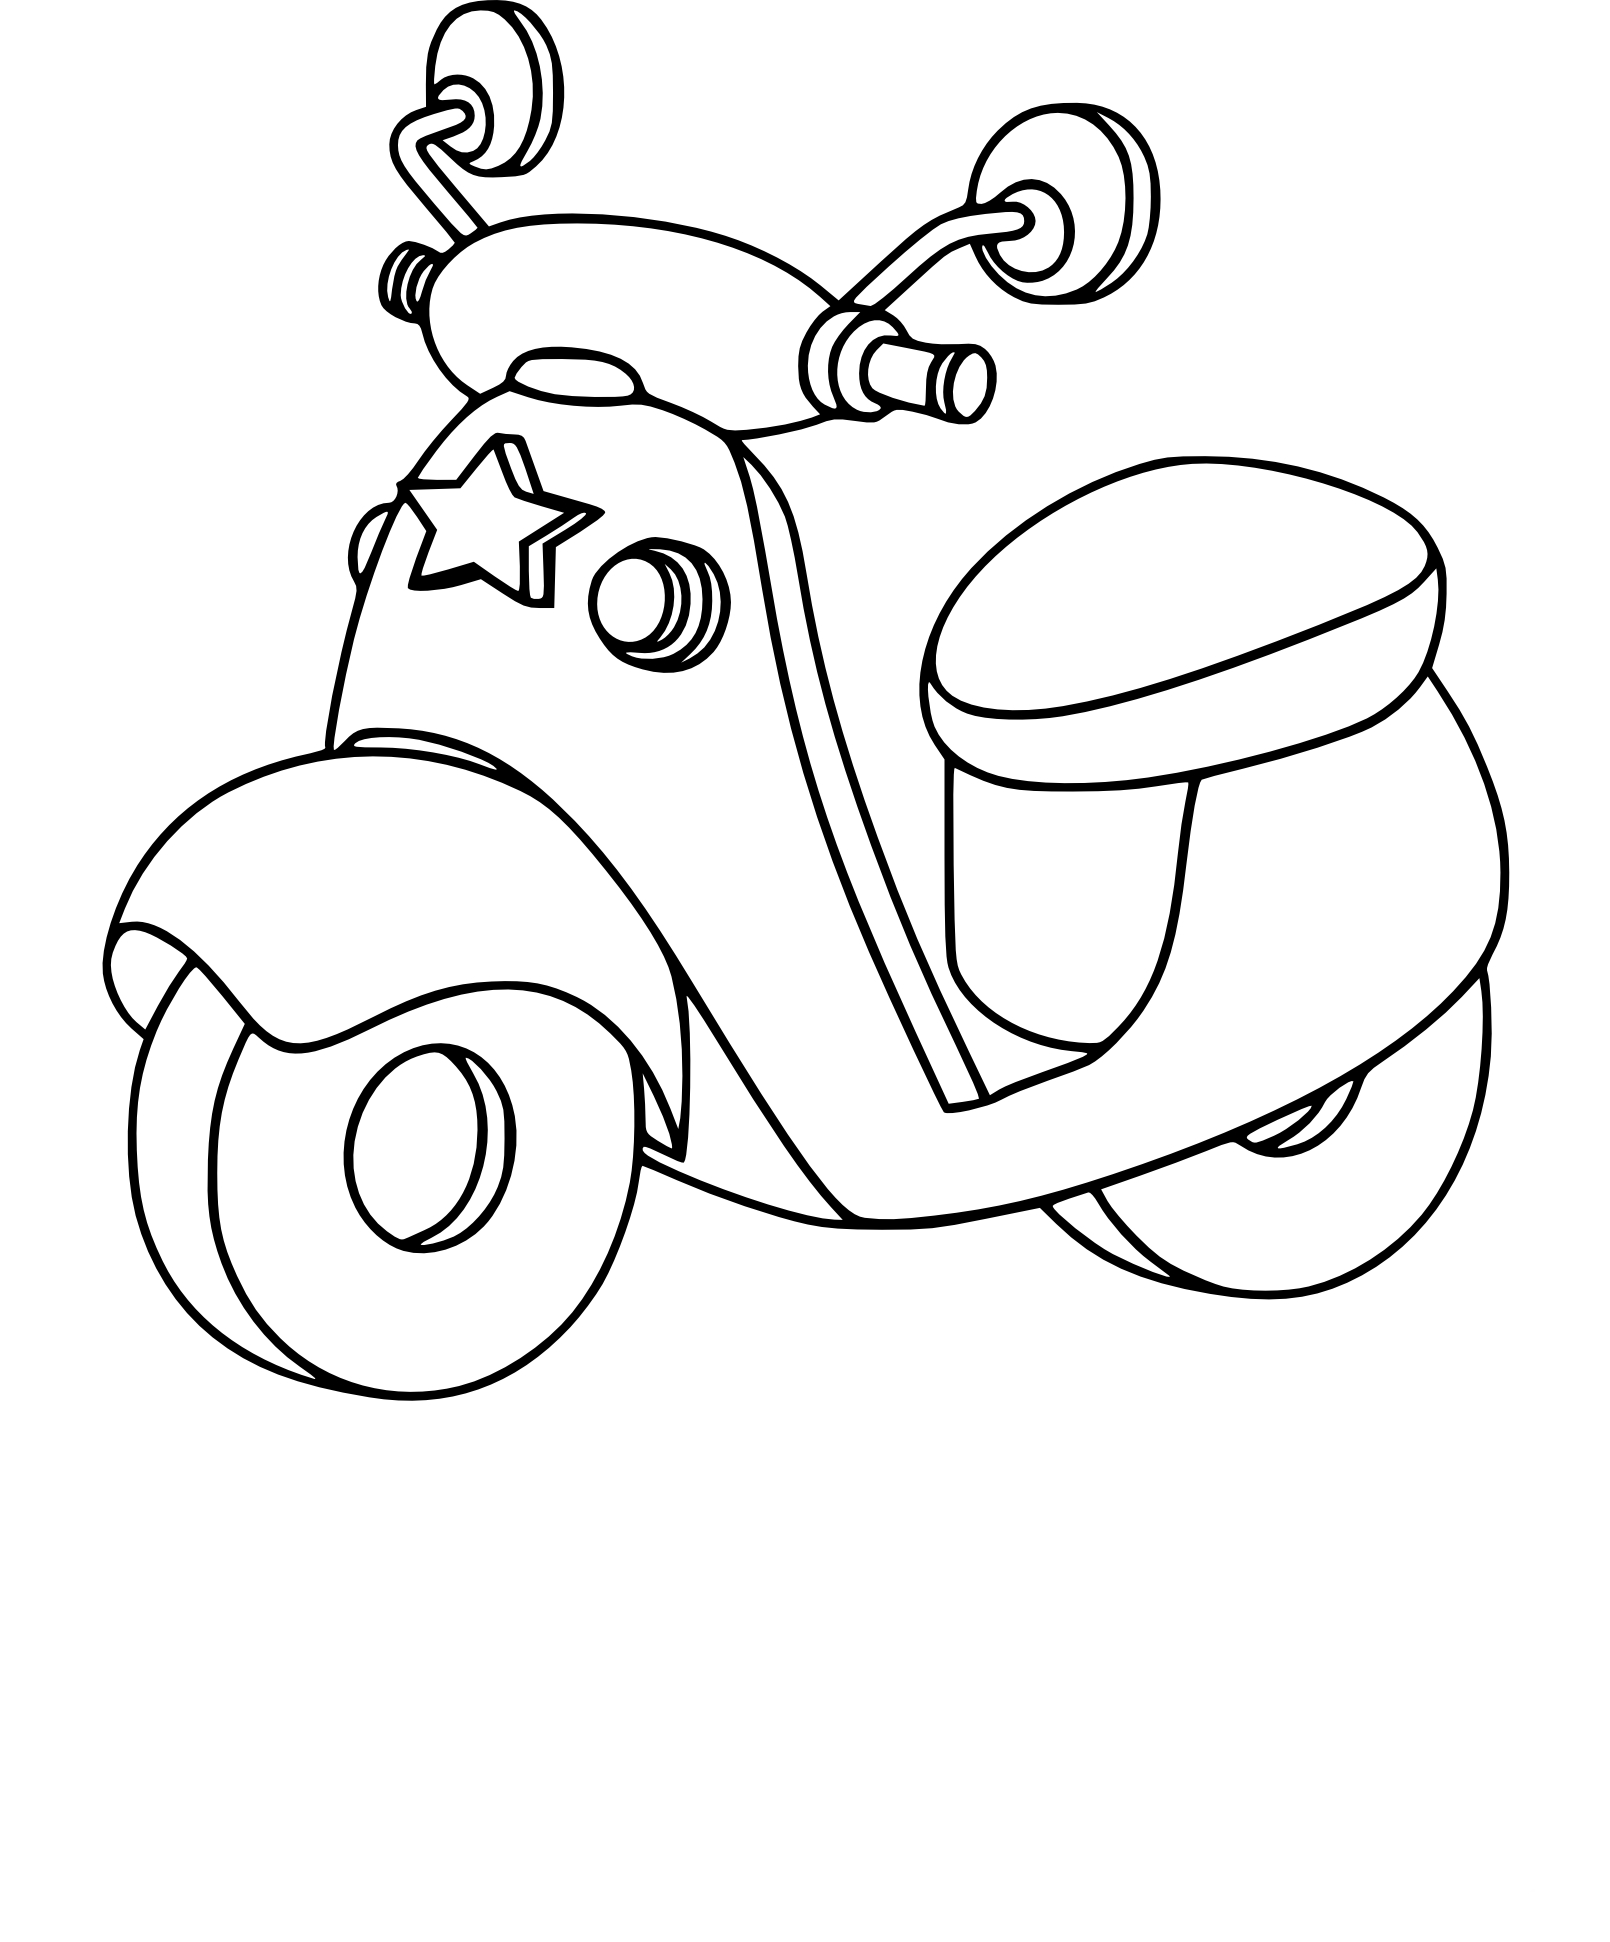 Coloriage Scooter 224 Imprimer